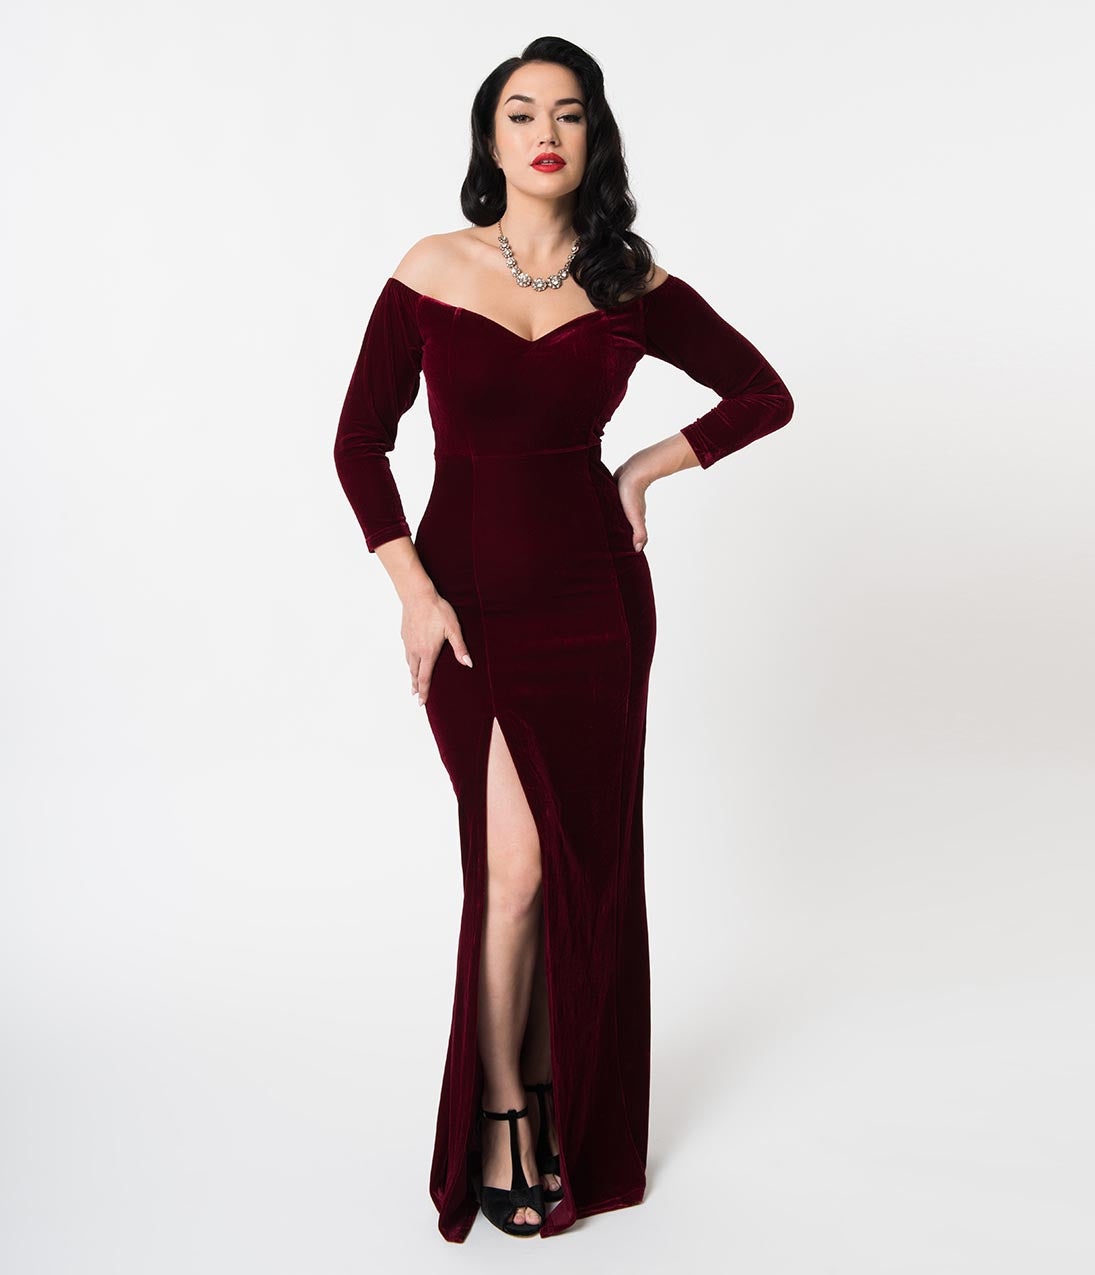 Old Hollywood Dresses - 1930s, 1940s 1950s